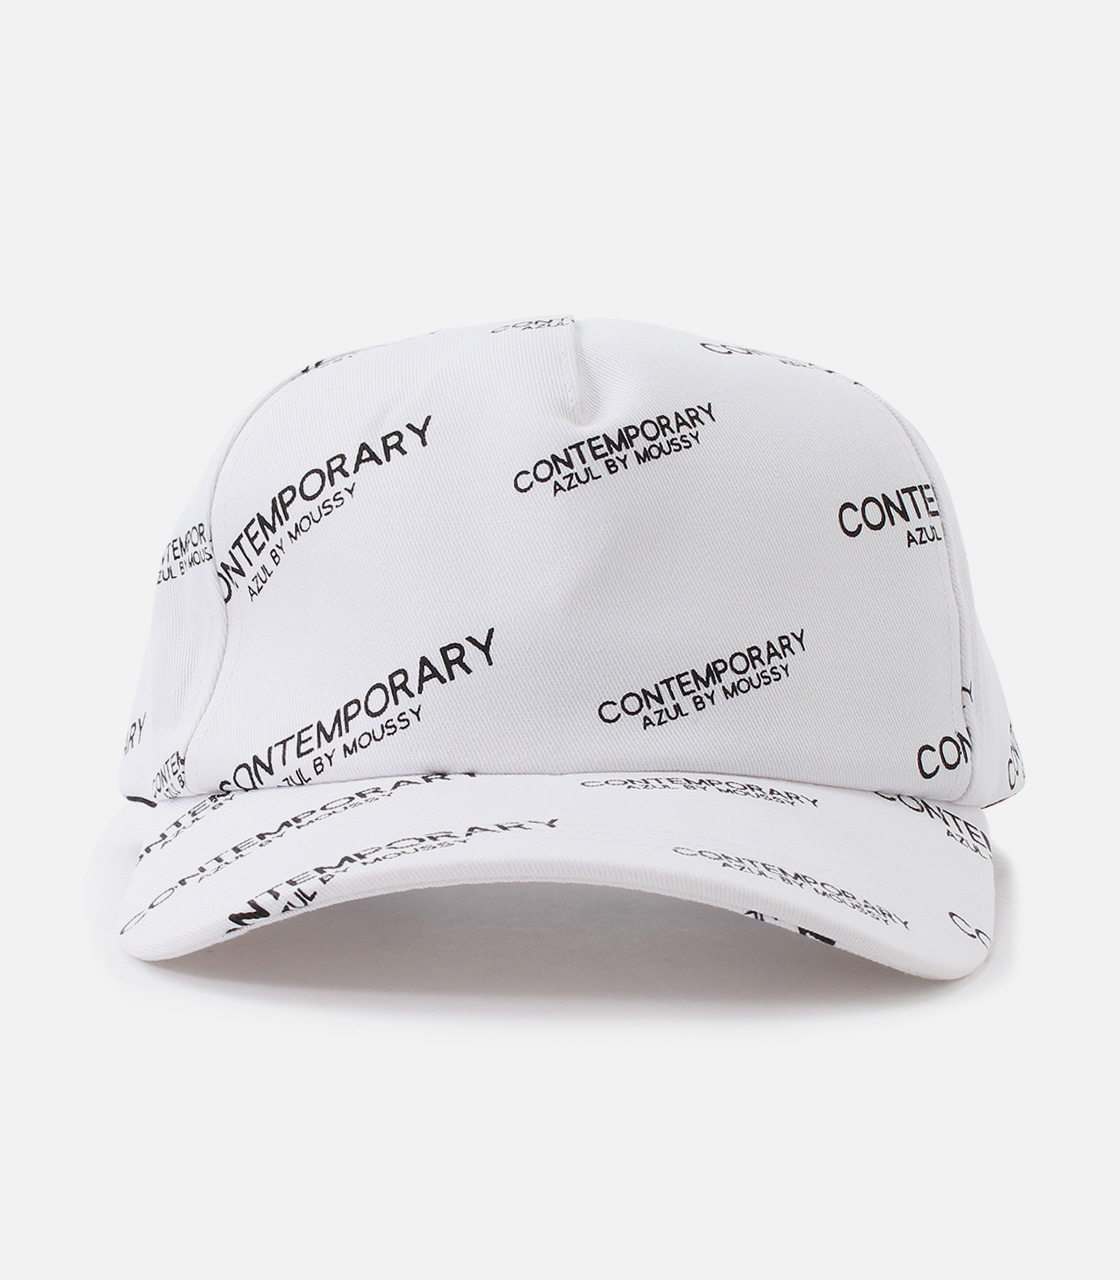 【AZUL BY MOUSSY】CONTEMPORARY 6PANEL CAP 詳細画像 柄WHT 2